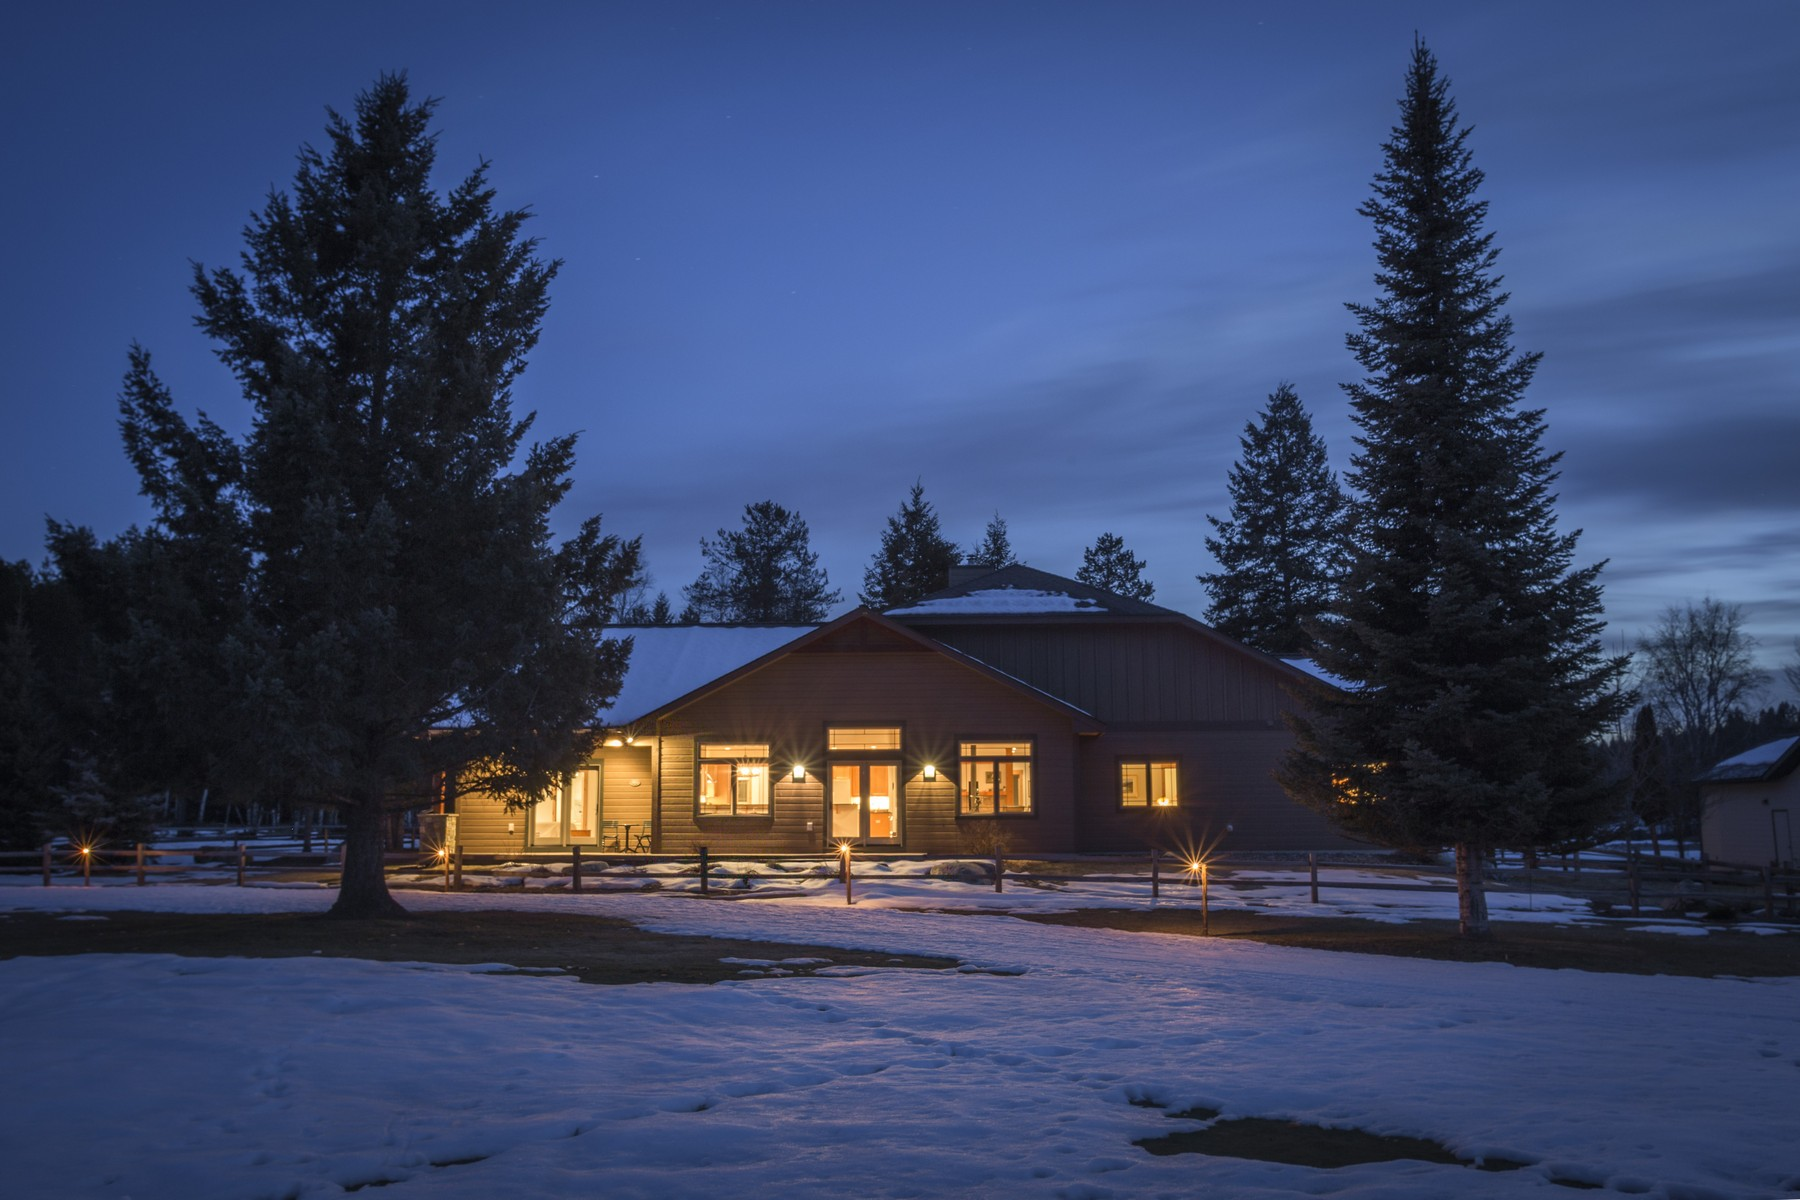 Single Family Home for Sale at Grouse Mountain Classic 299 Fairway Dr Whitefish, Montana, 59937 United States